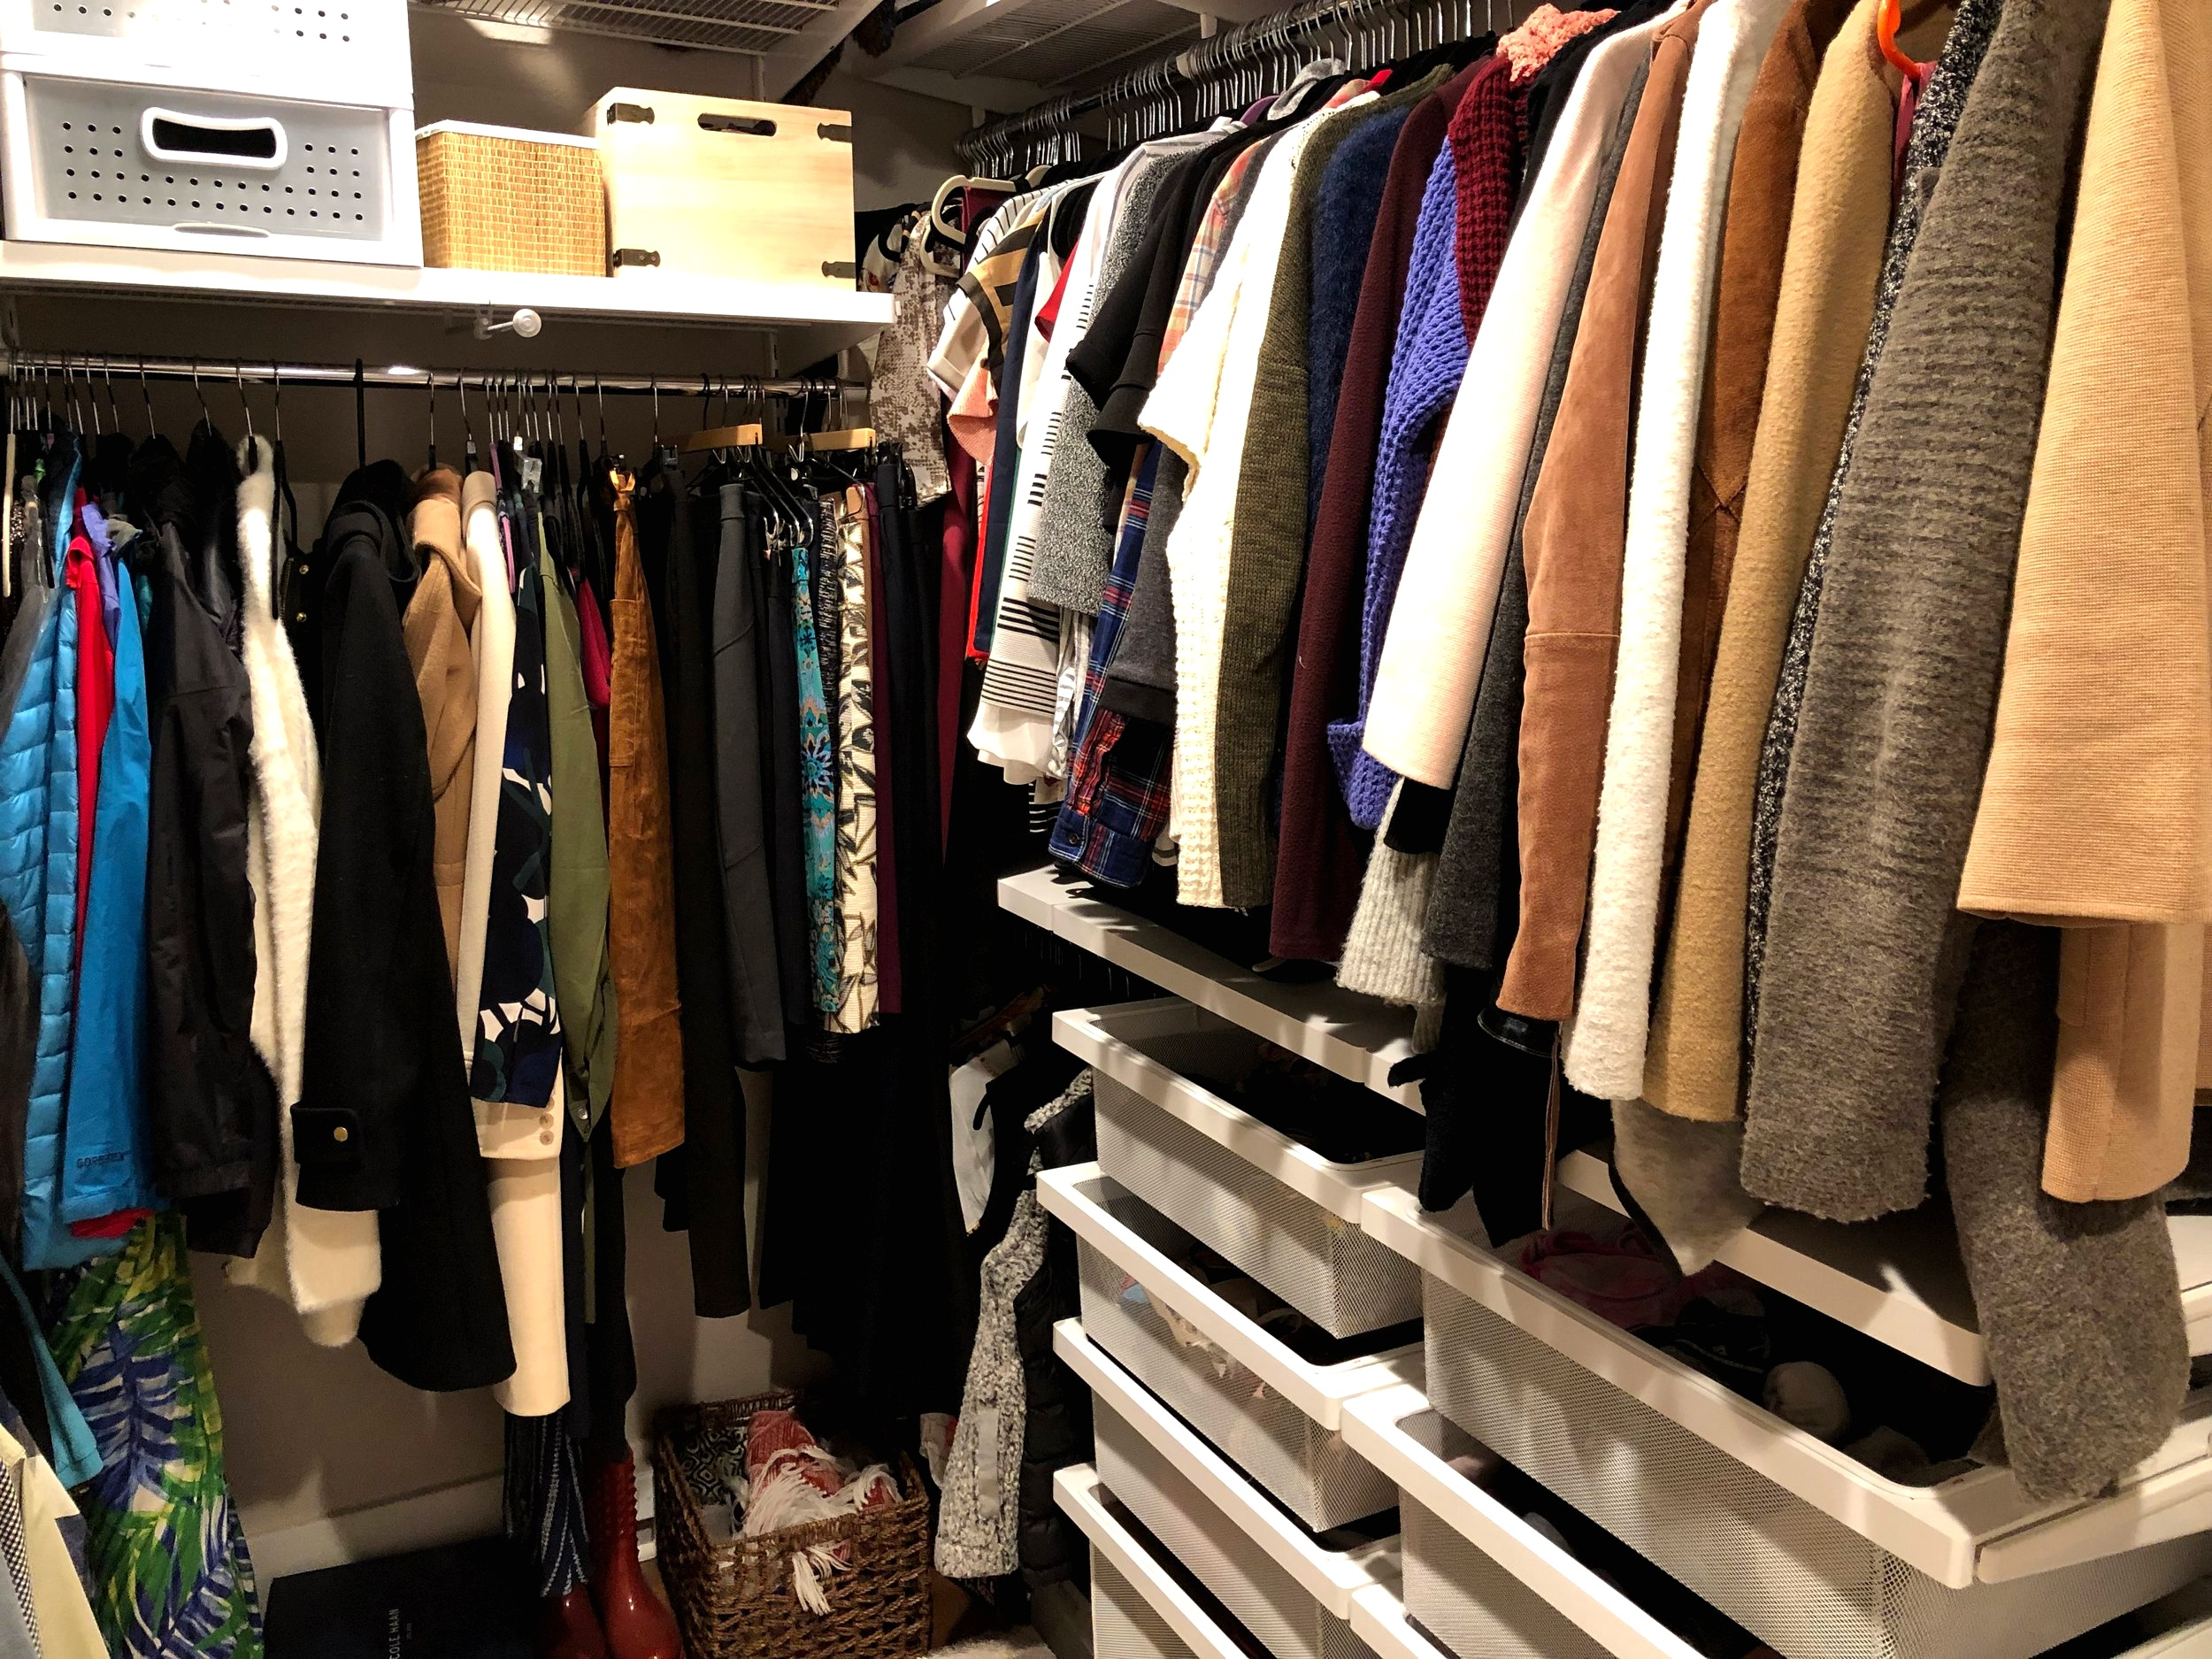 The closet of someone who does not need any more clothes.